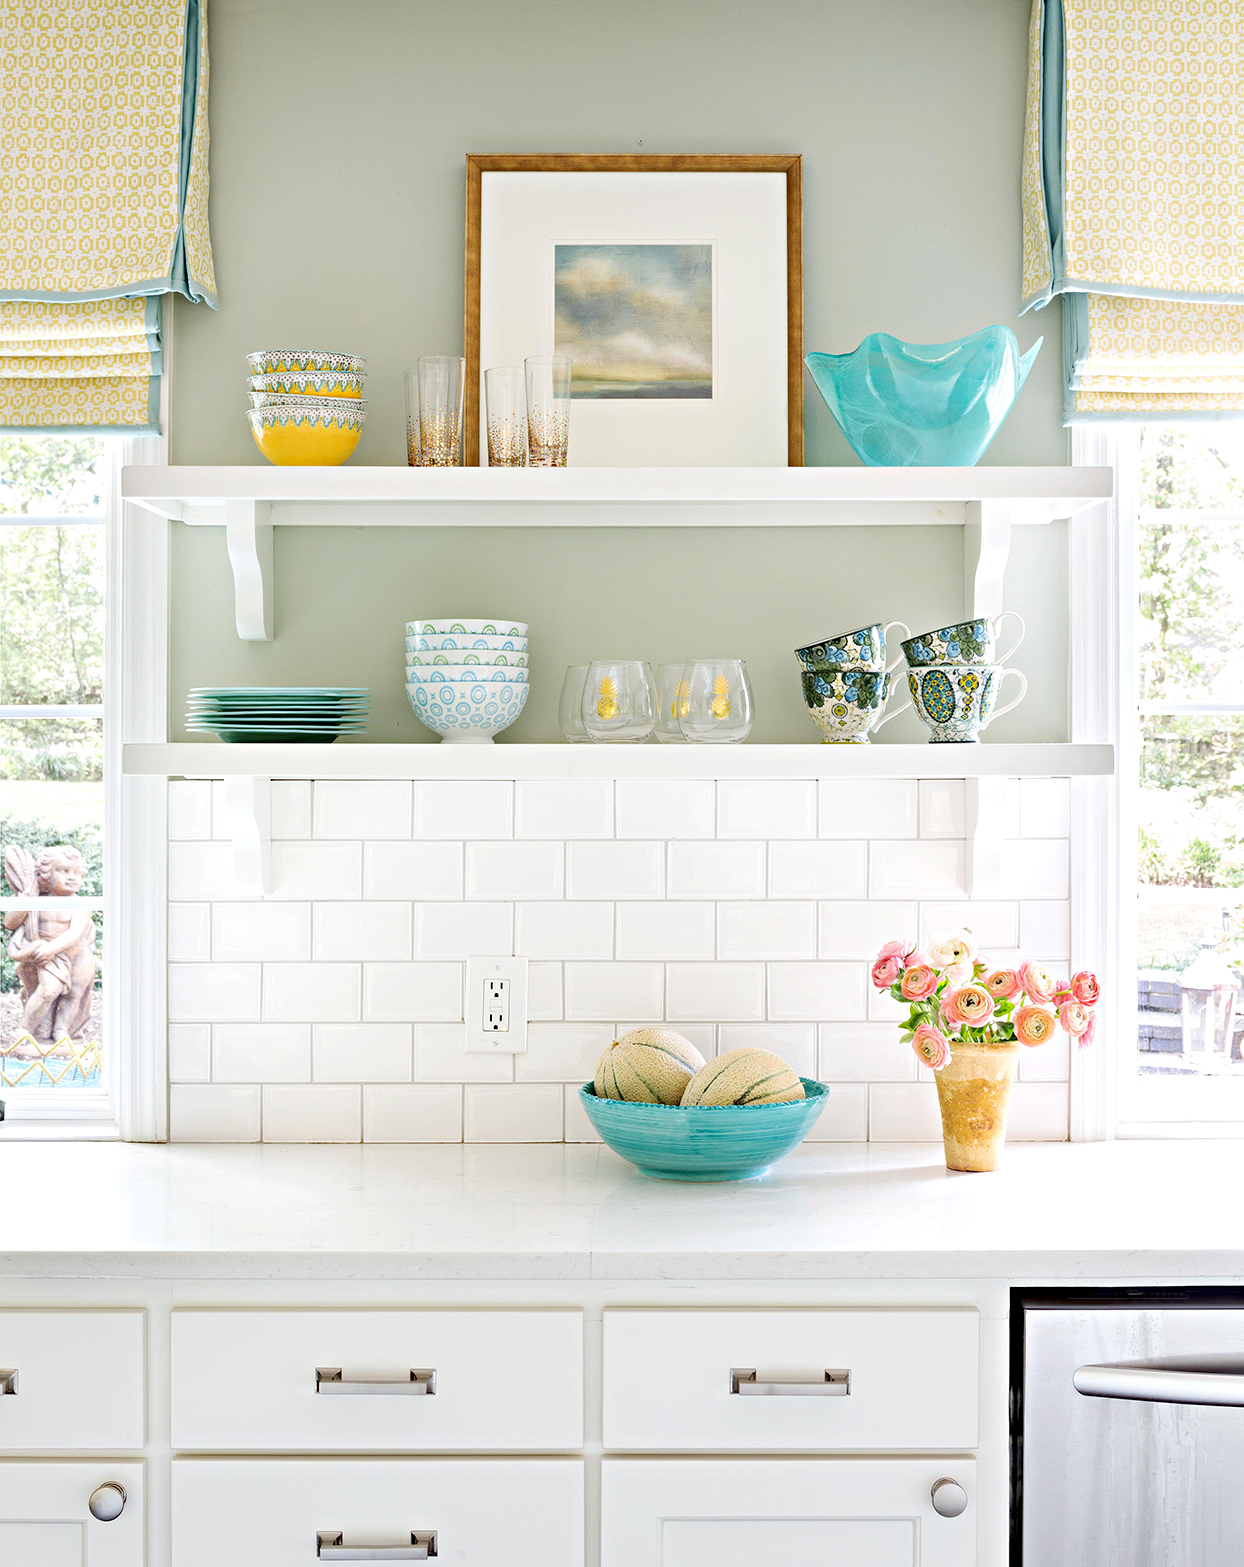 Kitchen counter with white tile